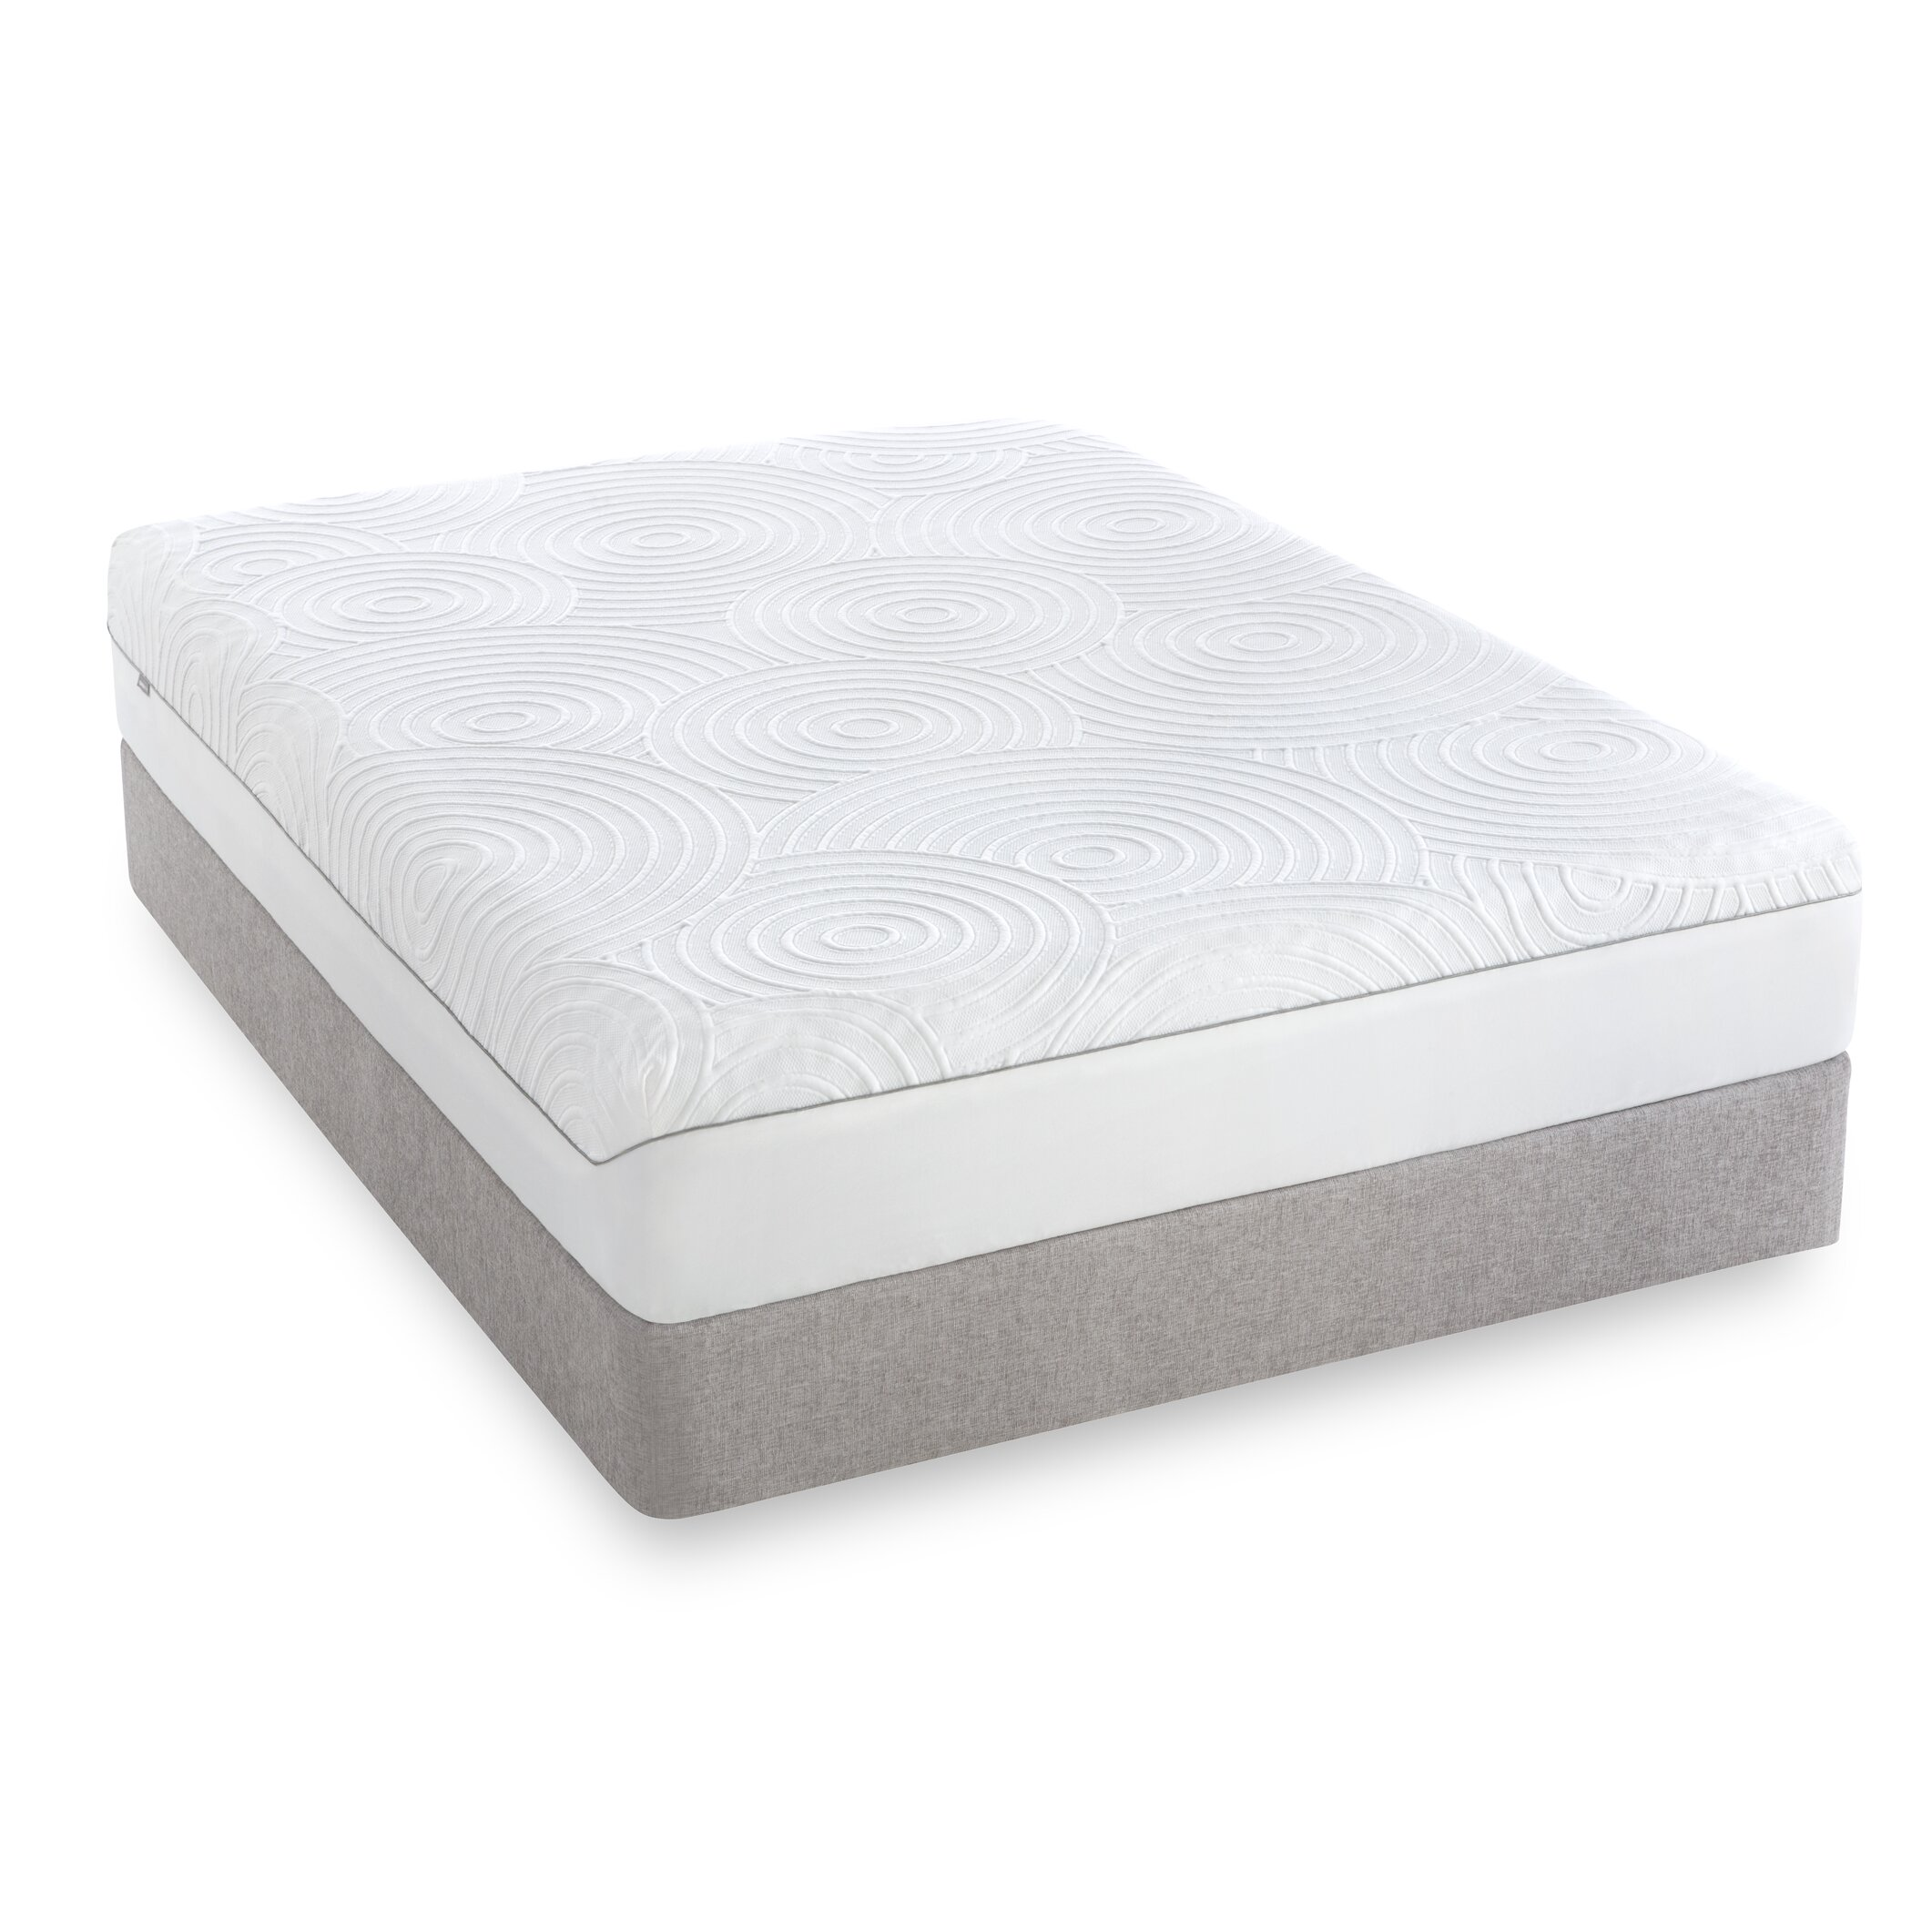 Tempur Pedic Waterproof Mattress Protector Amp Reviews Wayfair